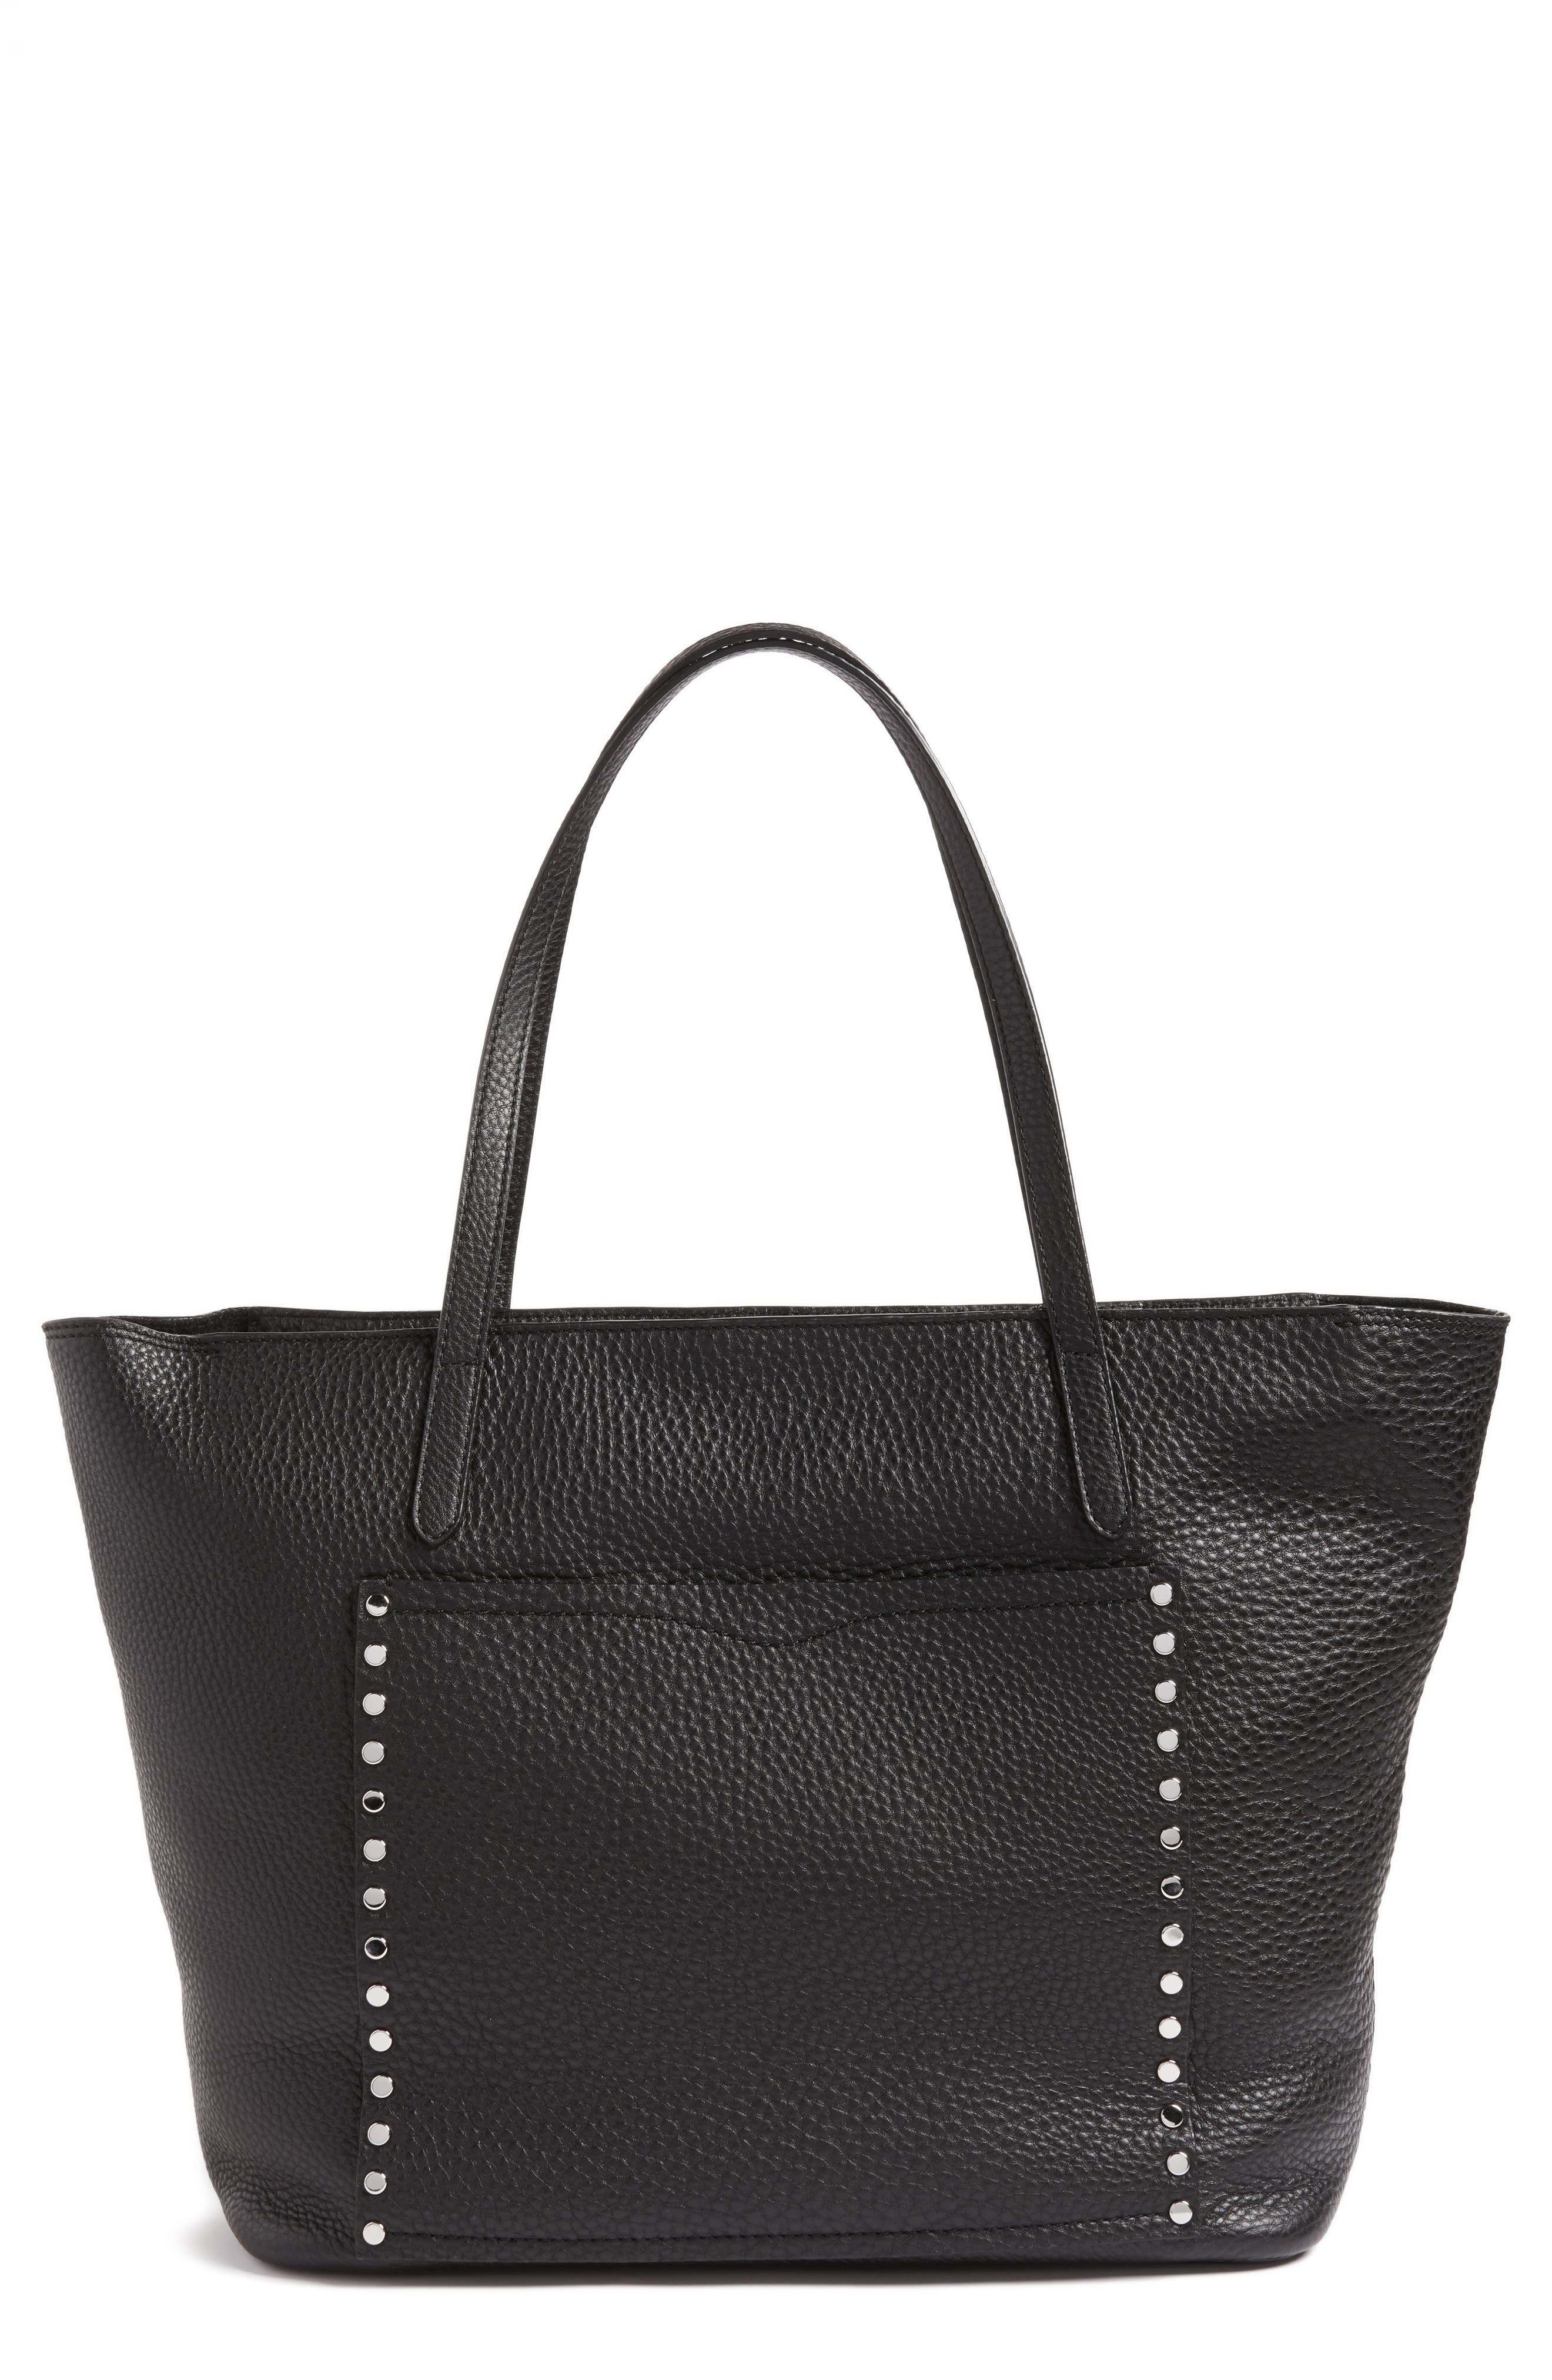 Image of Rebecca Minkoff Unlined Front Pocket Leather Tote